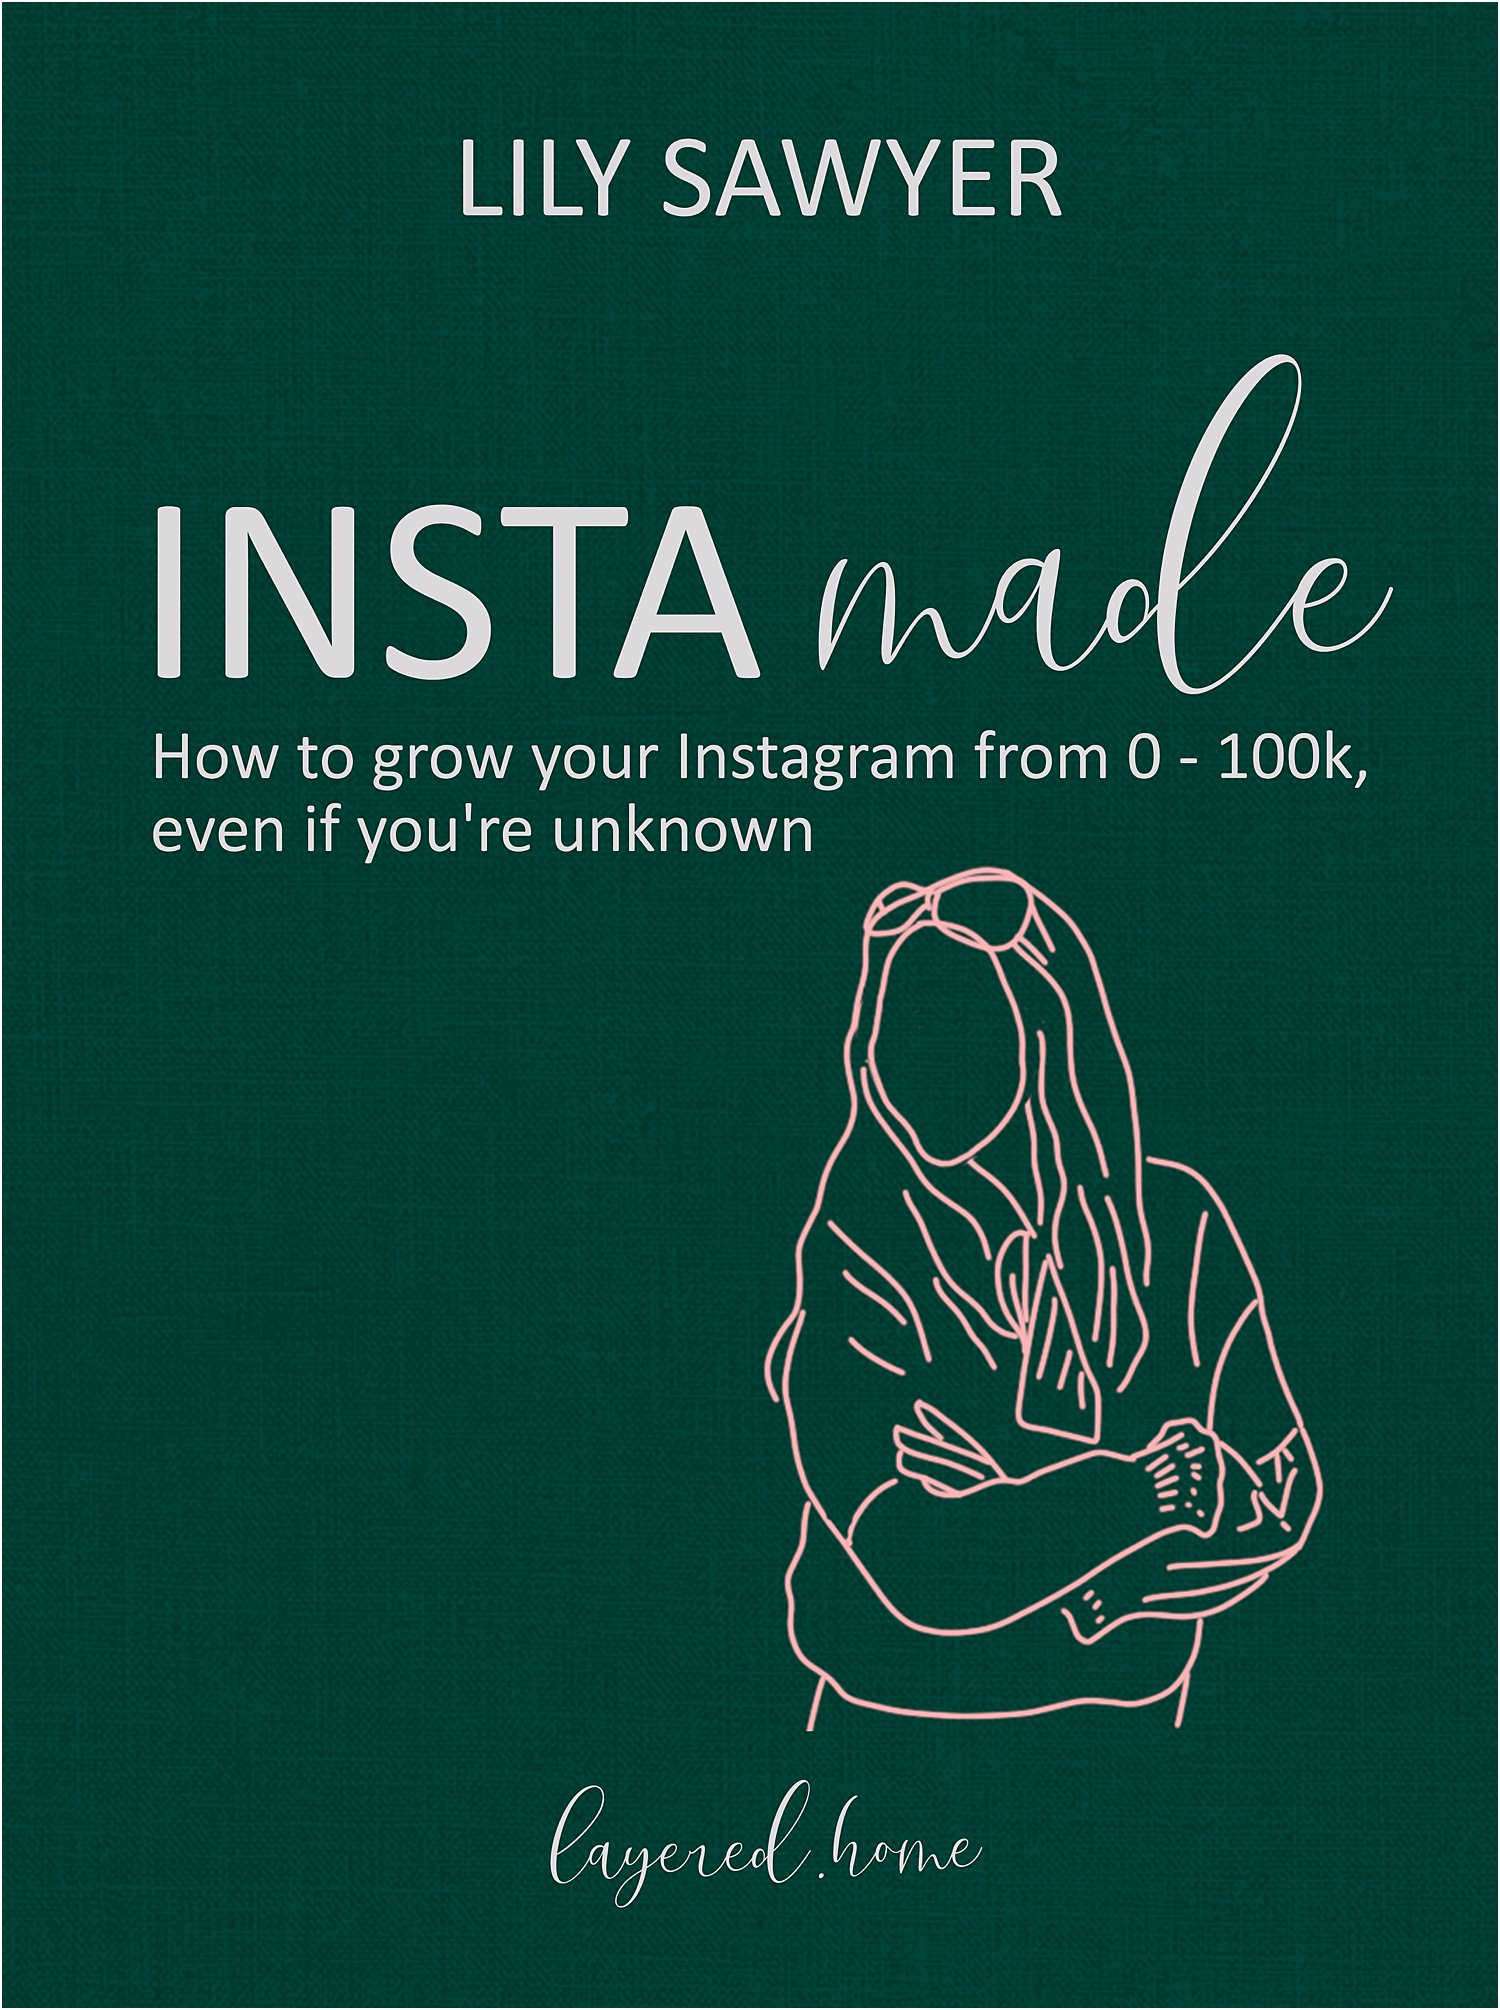 instamade-how-to-grow-your-instagram-from-0-100k-even-if-youre-unknown-lily-sawyer